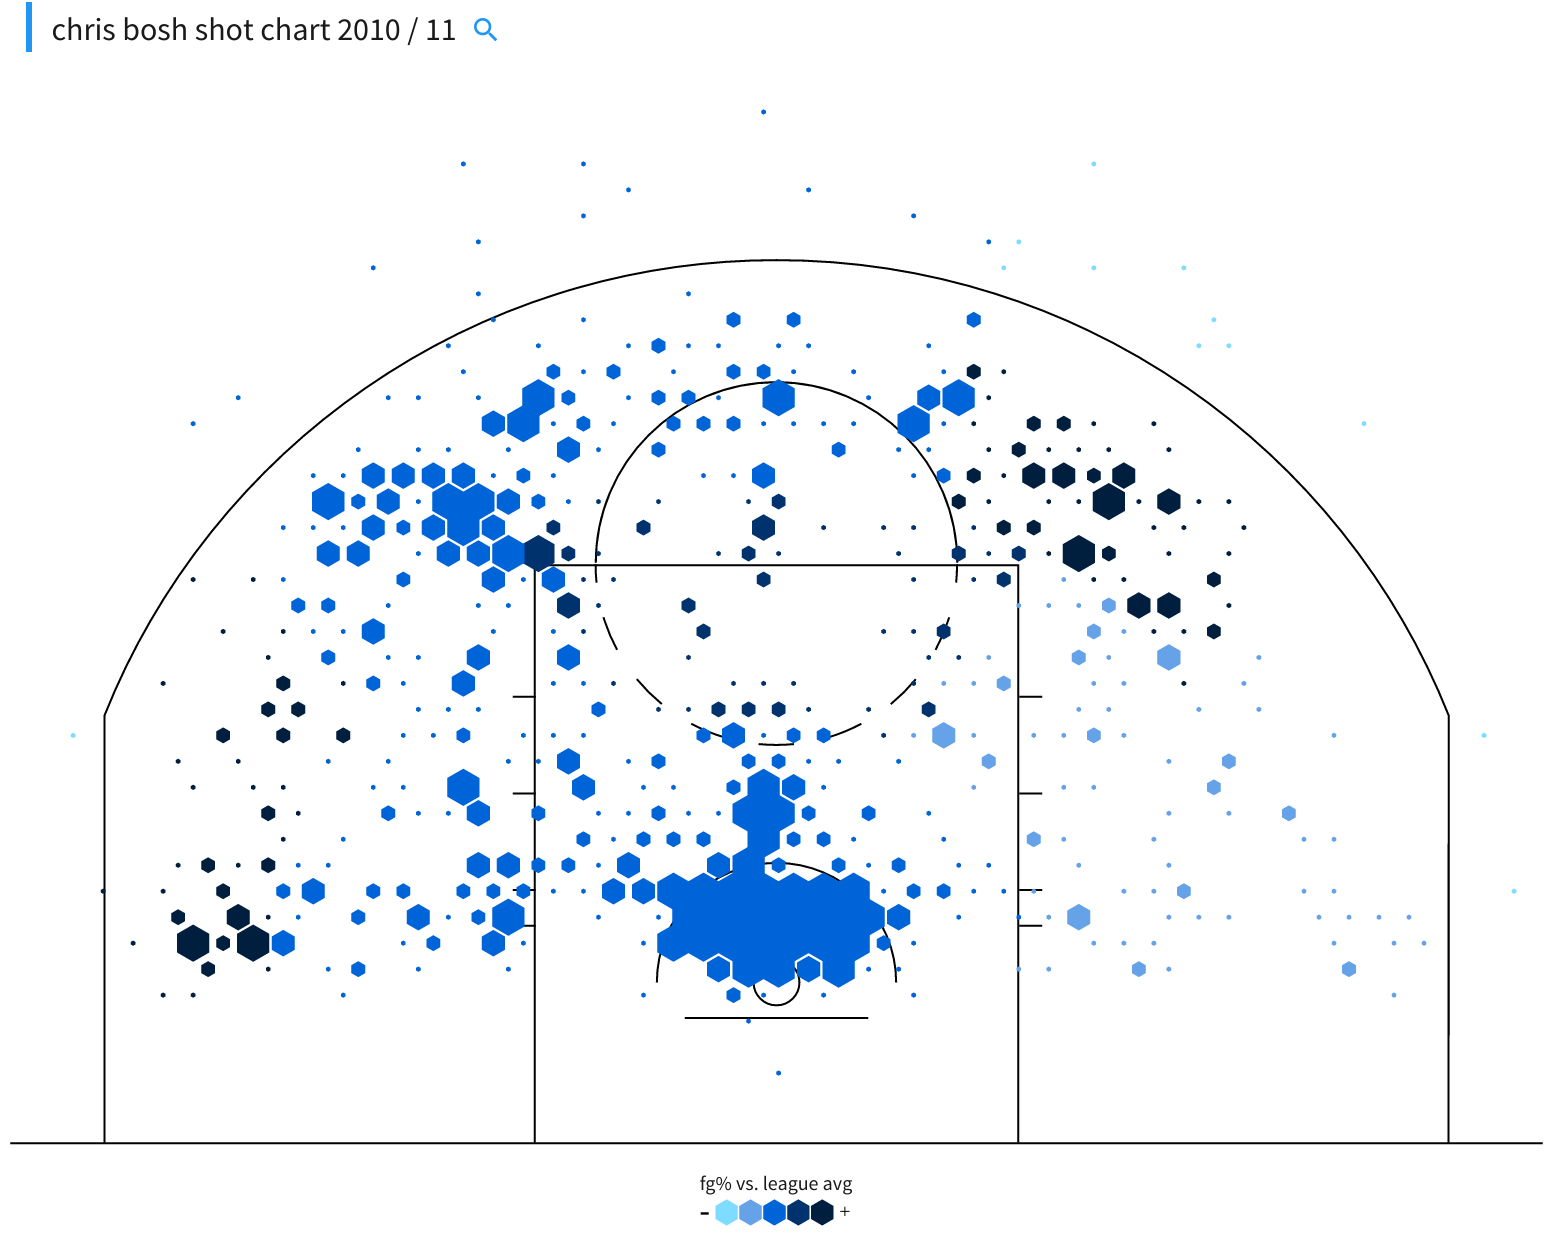 Chris Bosh shot chart 2010-11